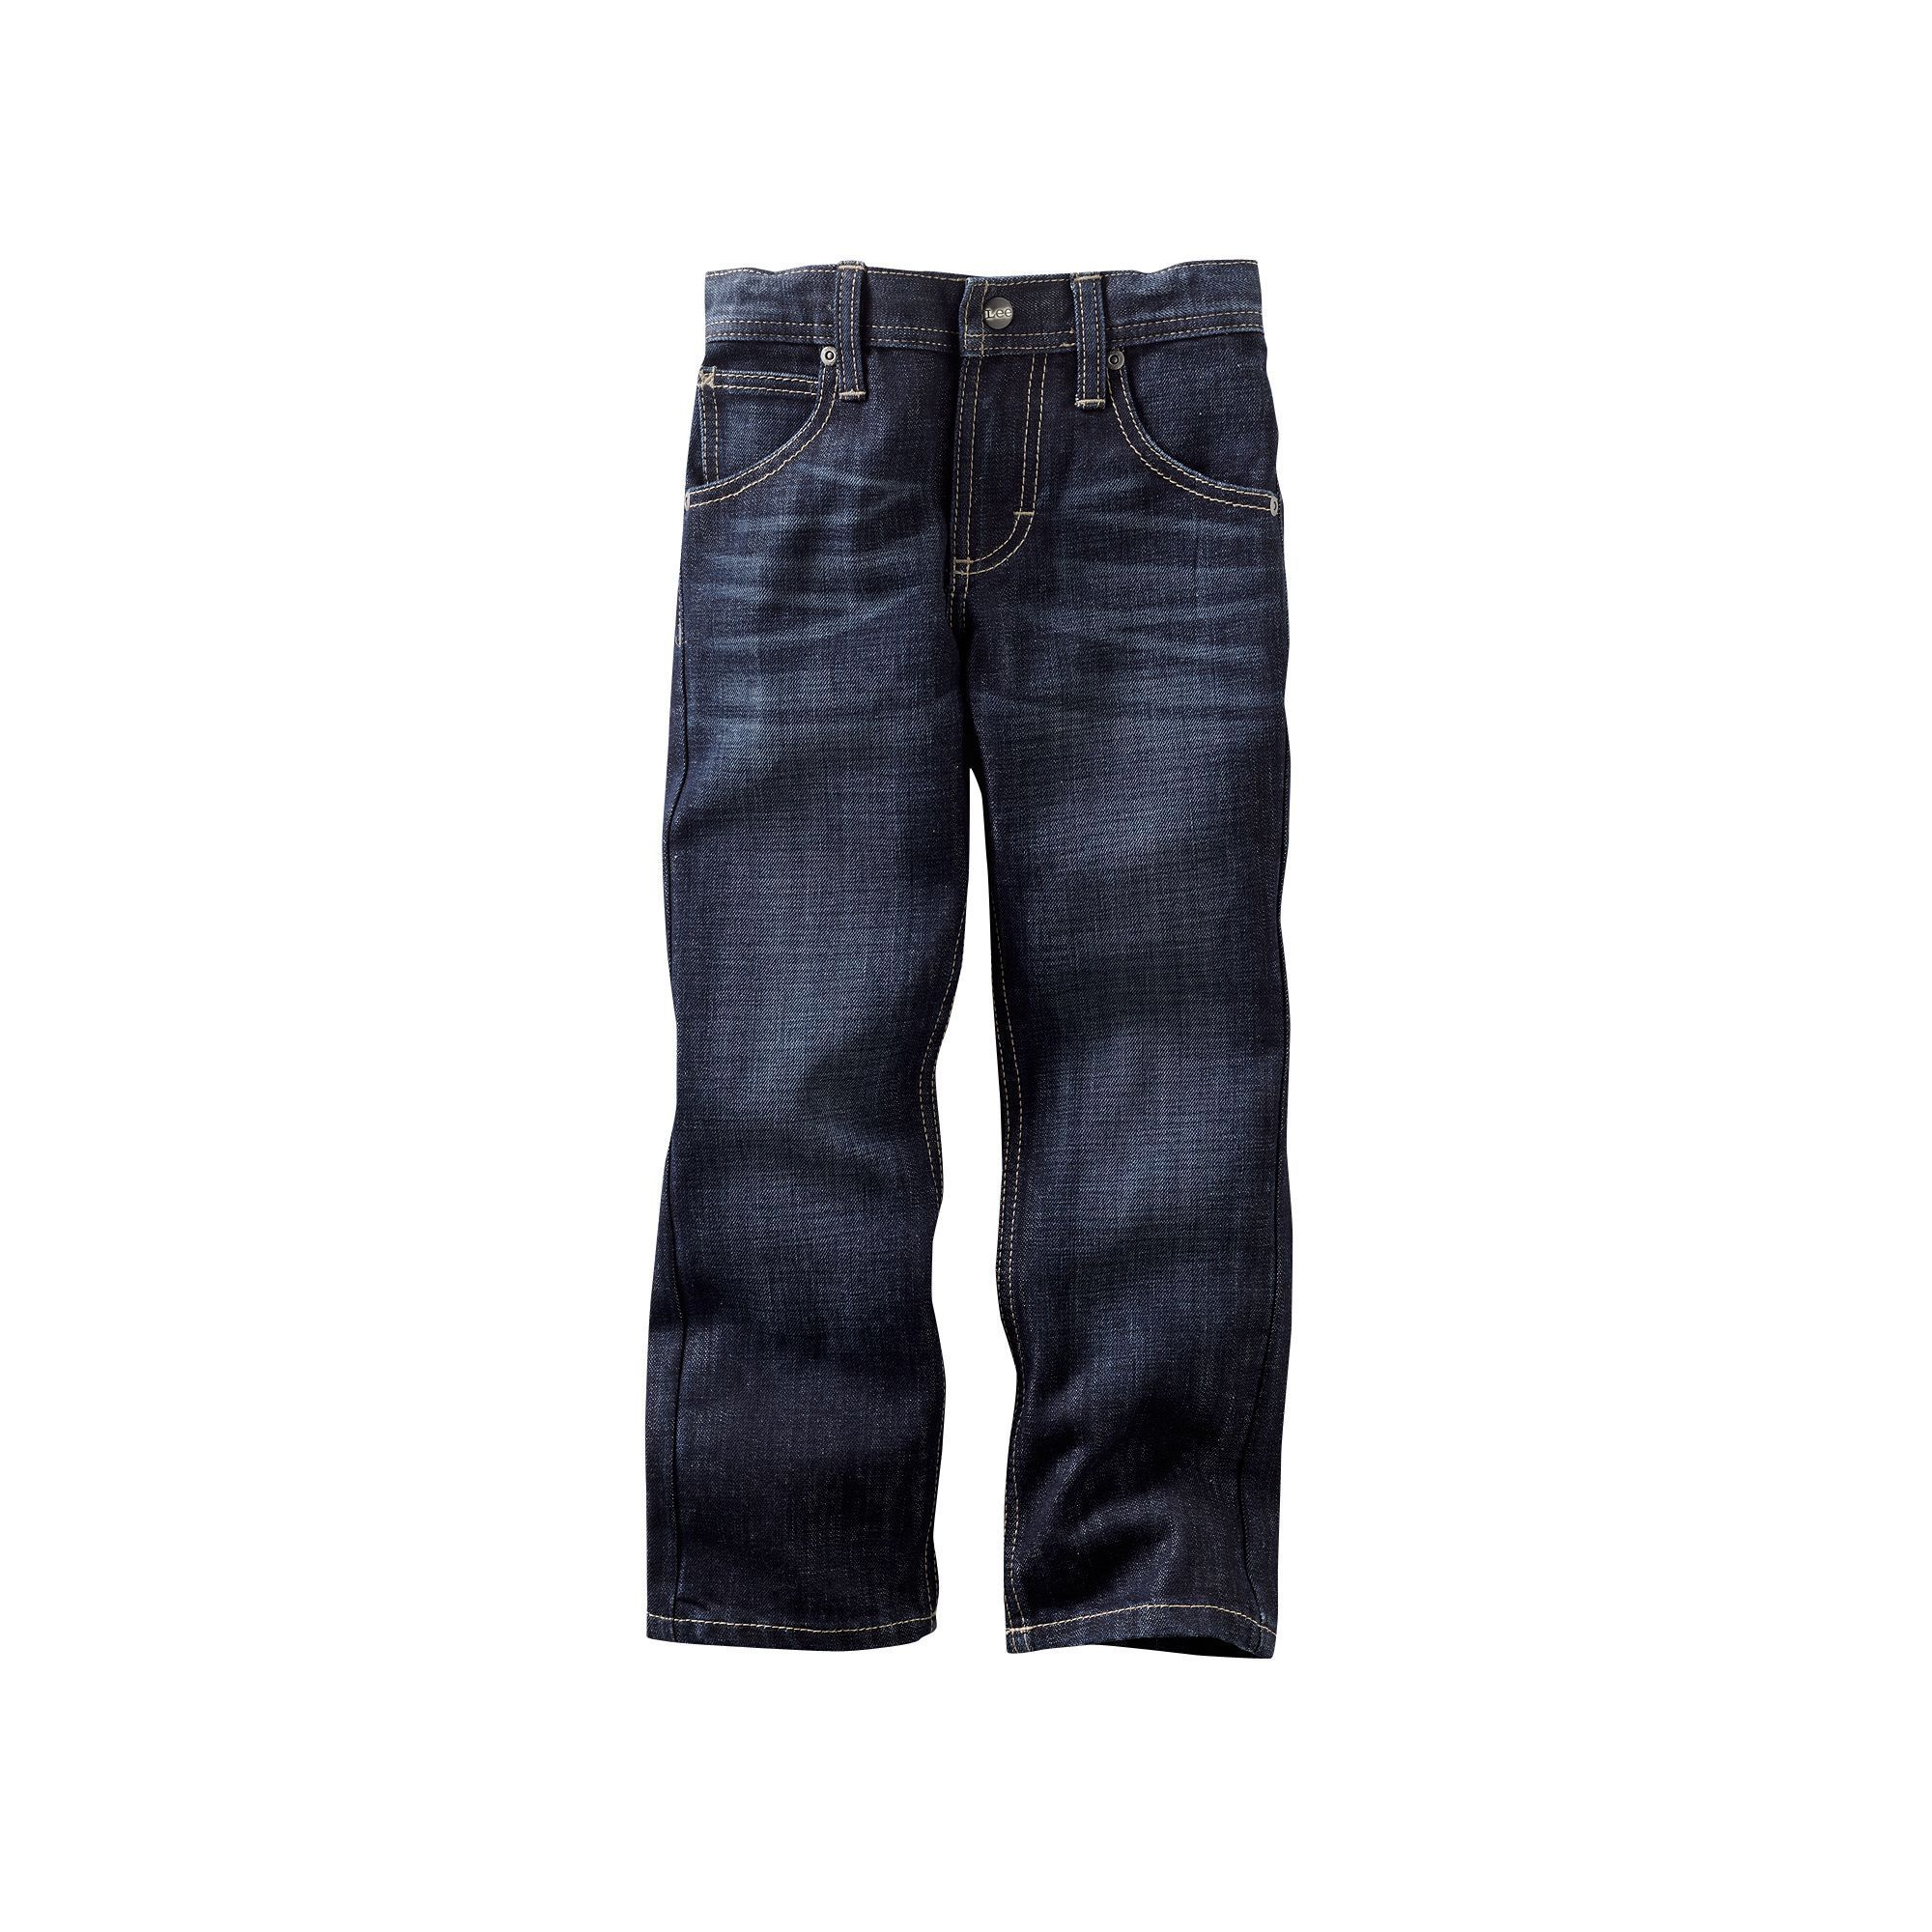 p comfort marion lee elastane regular lewis waist women comforter straight bbbopef c cotton john one leg jeans wash